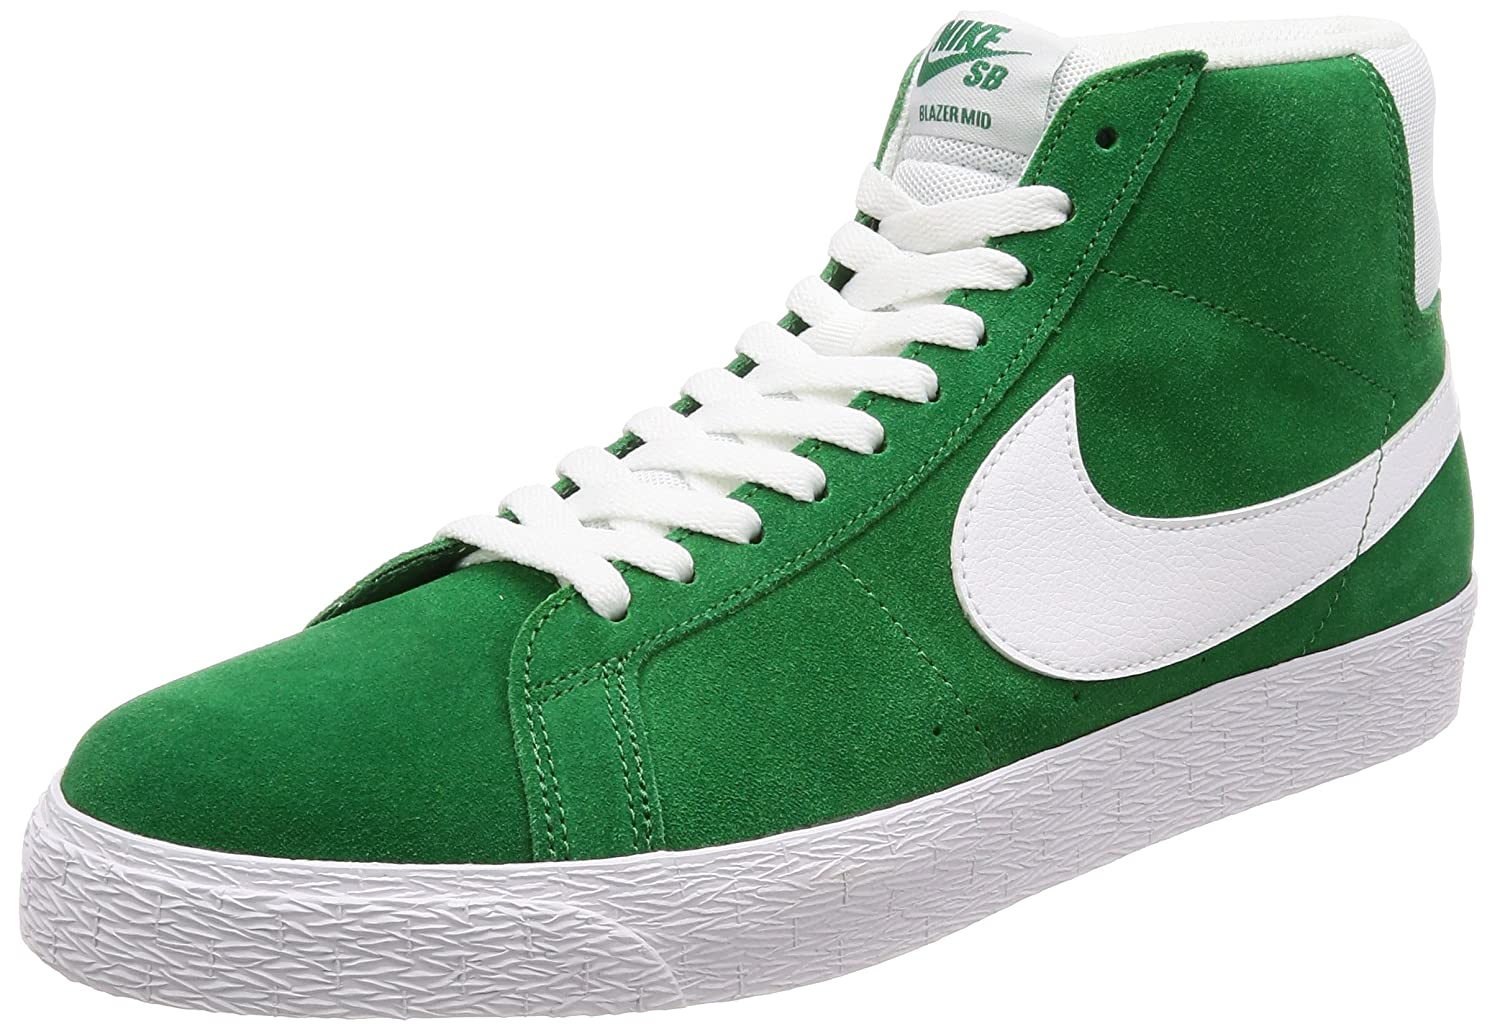 quality design d232e e8867 Amazon.com  Nike Men s SB Zoom Blazer Mid, Pine Green White, 10.5 M US   Health   Personal Care